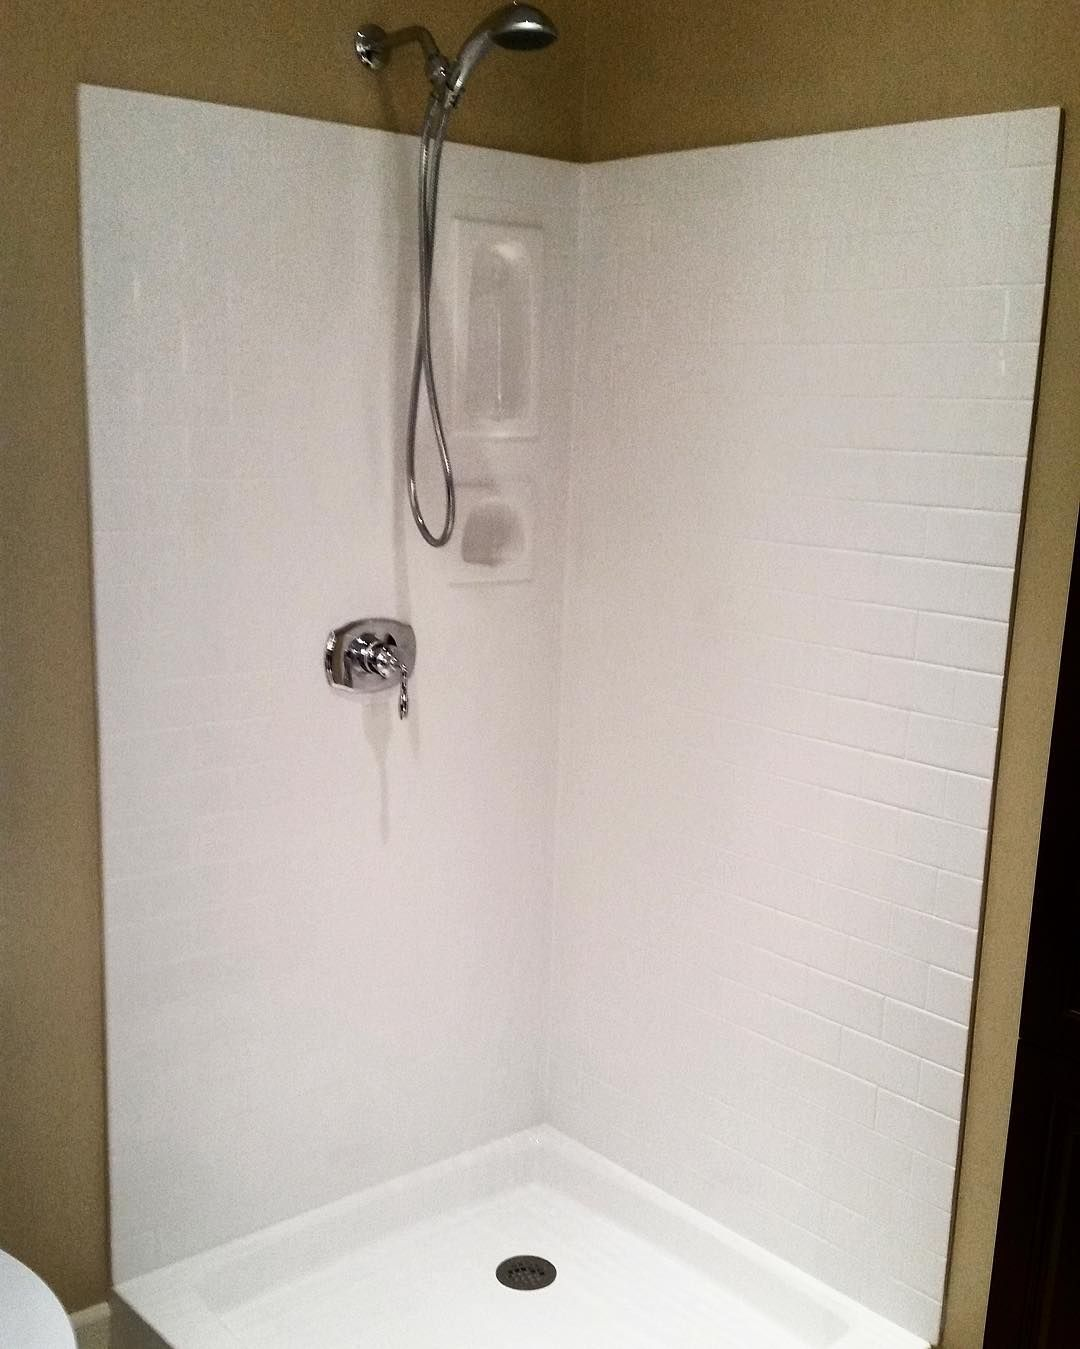 Looking For A Subwaytile Shower These New Shower Wall Panels From Terestone Give The Look Without The Cost Of Individual Tile Installation A